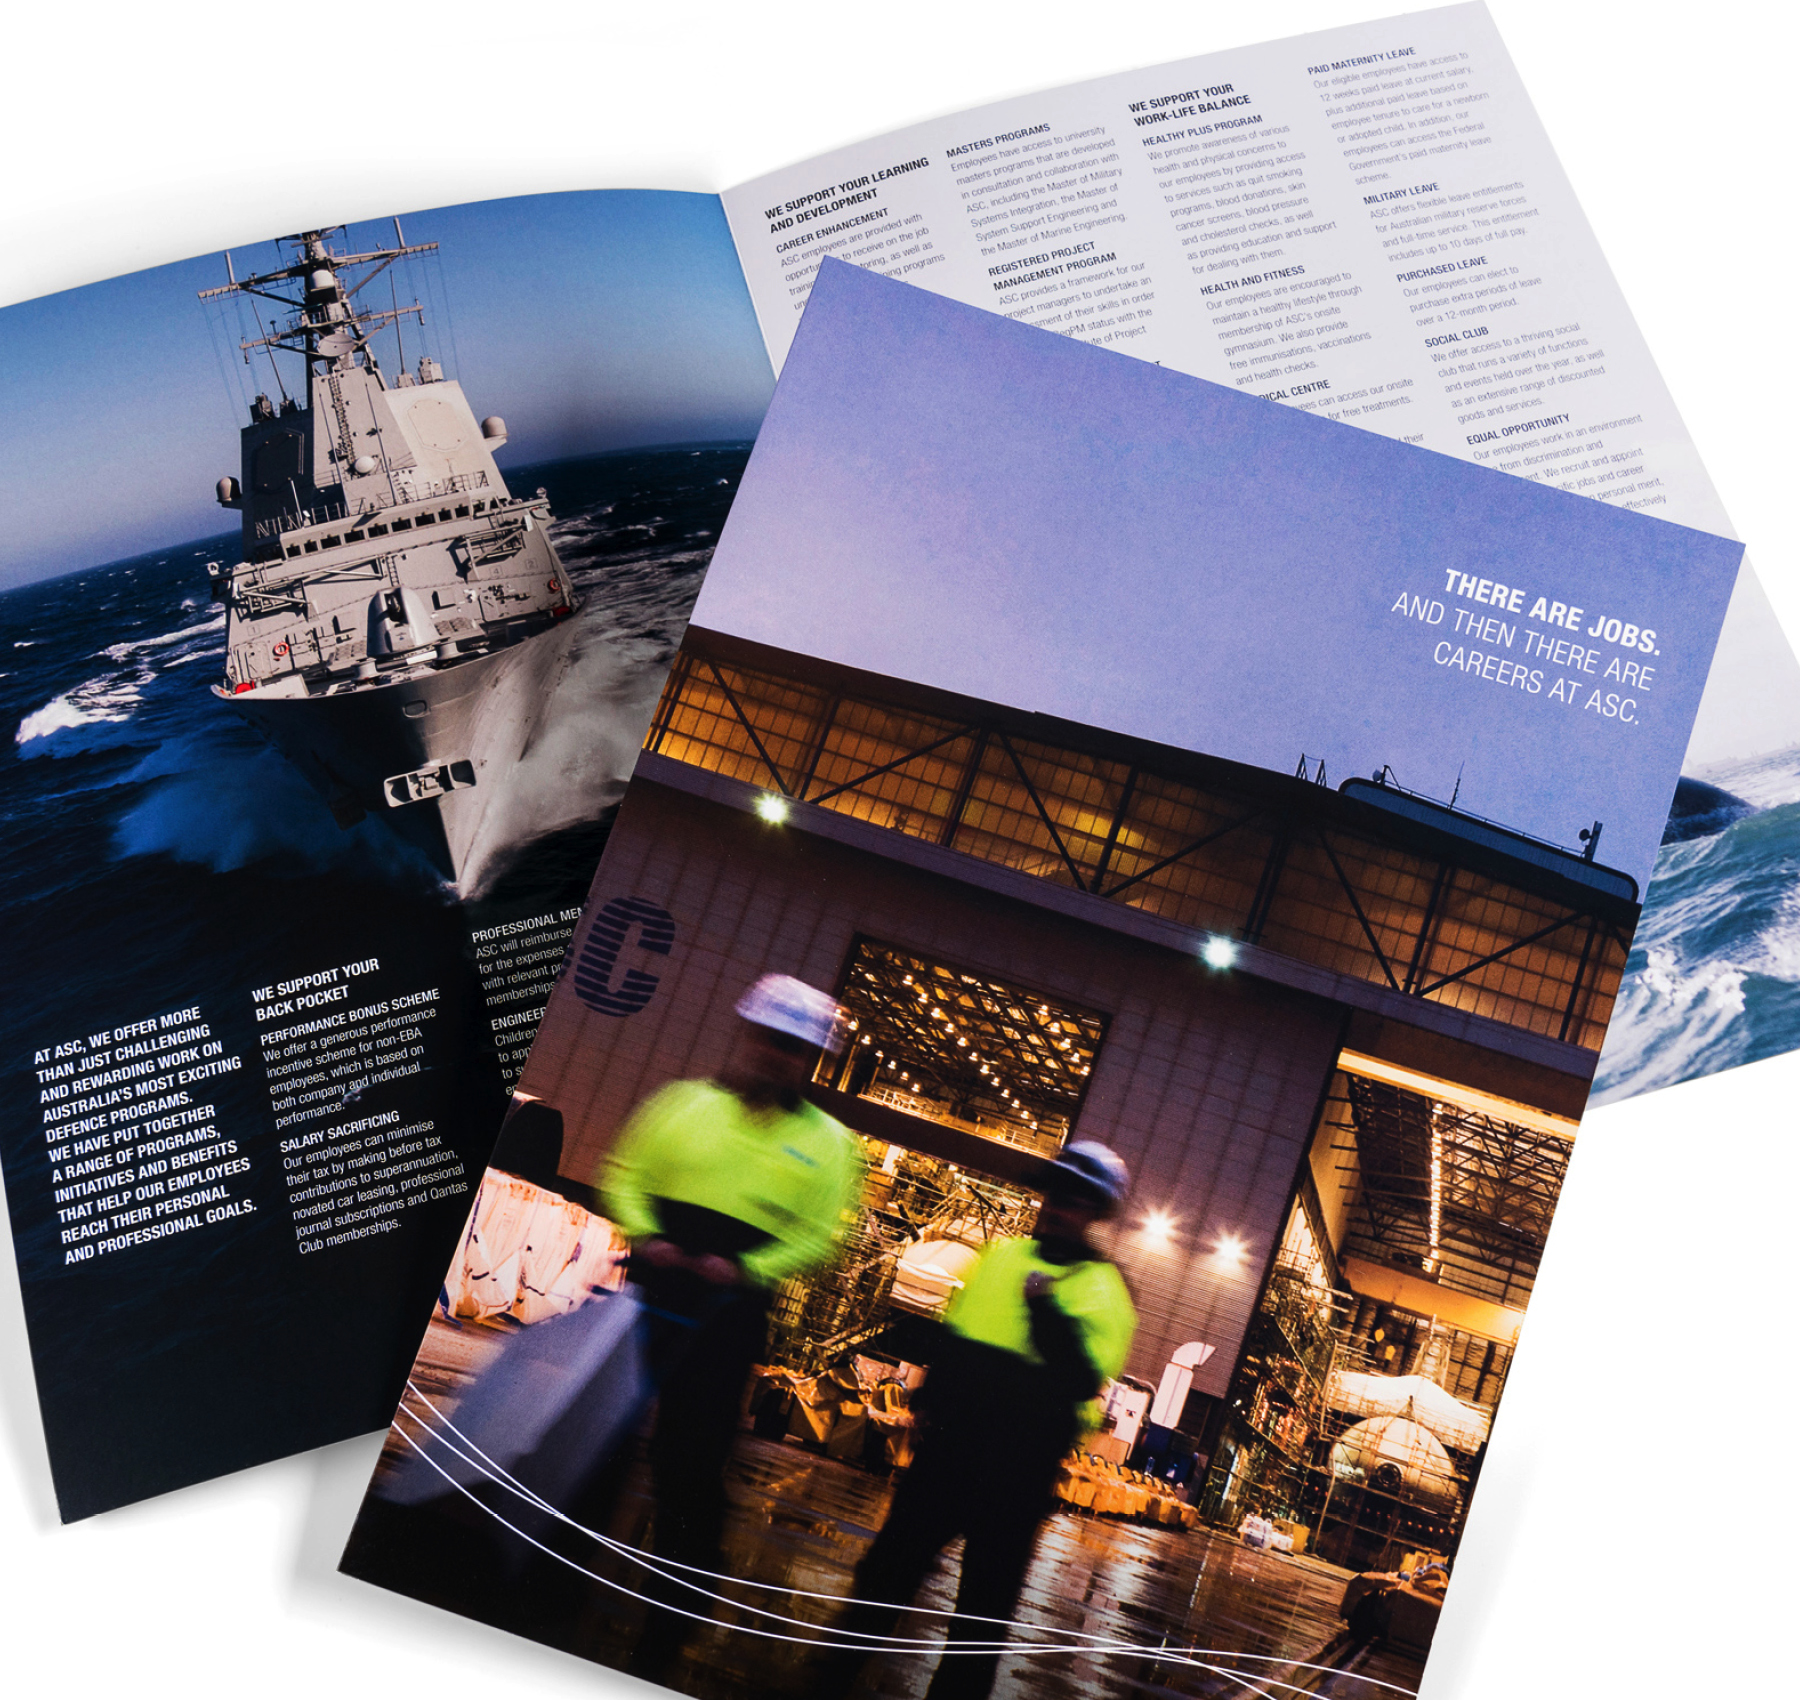 ASC (Formerly known as Australian Submarine Corporation) - Strategic communications support.With more than 2,500 employees across three facilities in South Australia and Western Australia, ASC is Australia's largest specialised defence shipbuilding organisation. CASTONDESIGN assists ASC with the design and production of all internal and external communication materials. Our support ranges from developing employee engagement strategies and training materials, through to producing high level executive documents and community open day and tradeshow materials.